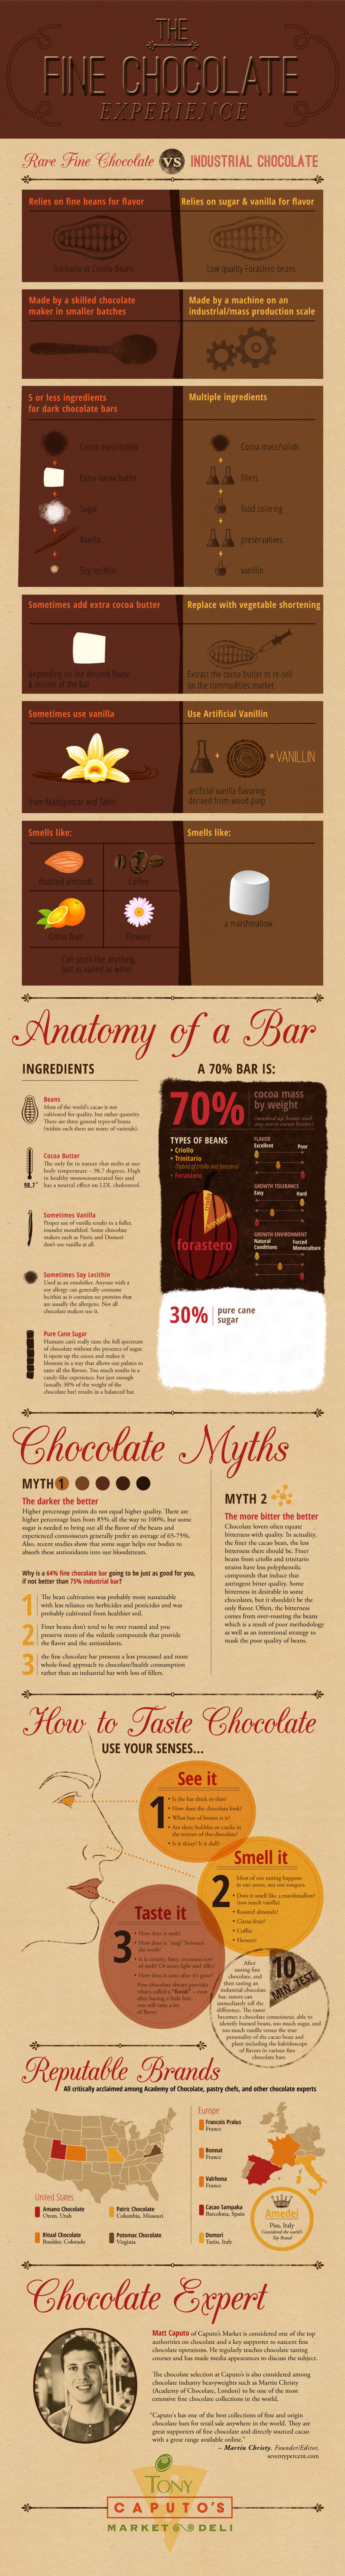 Fine Chocolate Experience Infographic